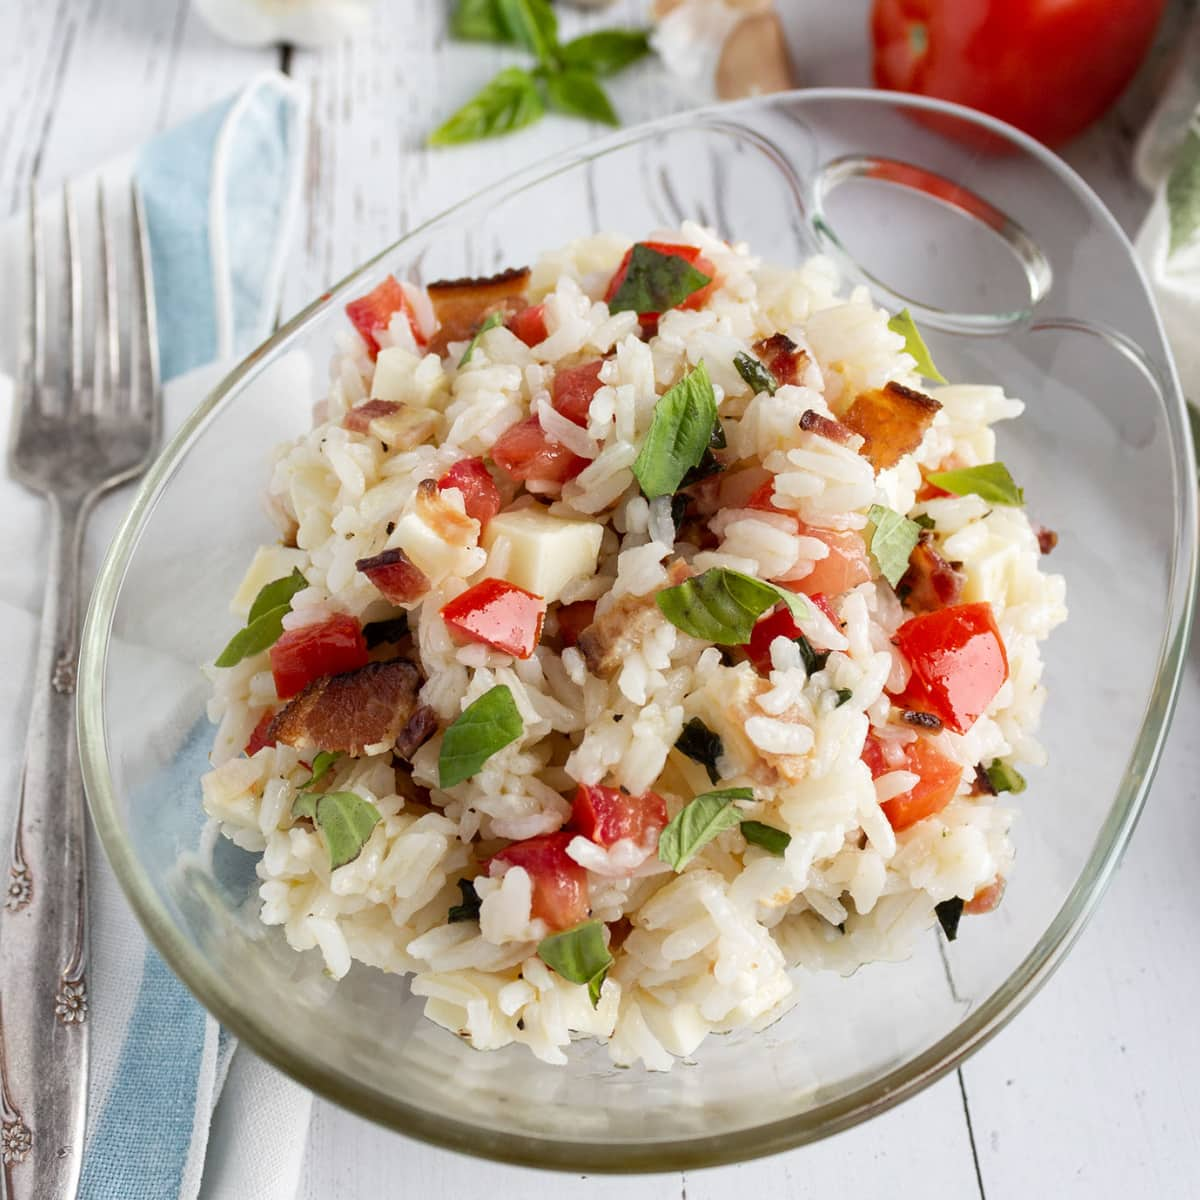 Salad of rice and vegetables in a bowl